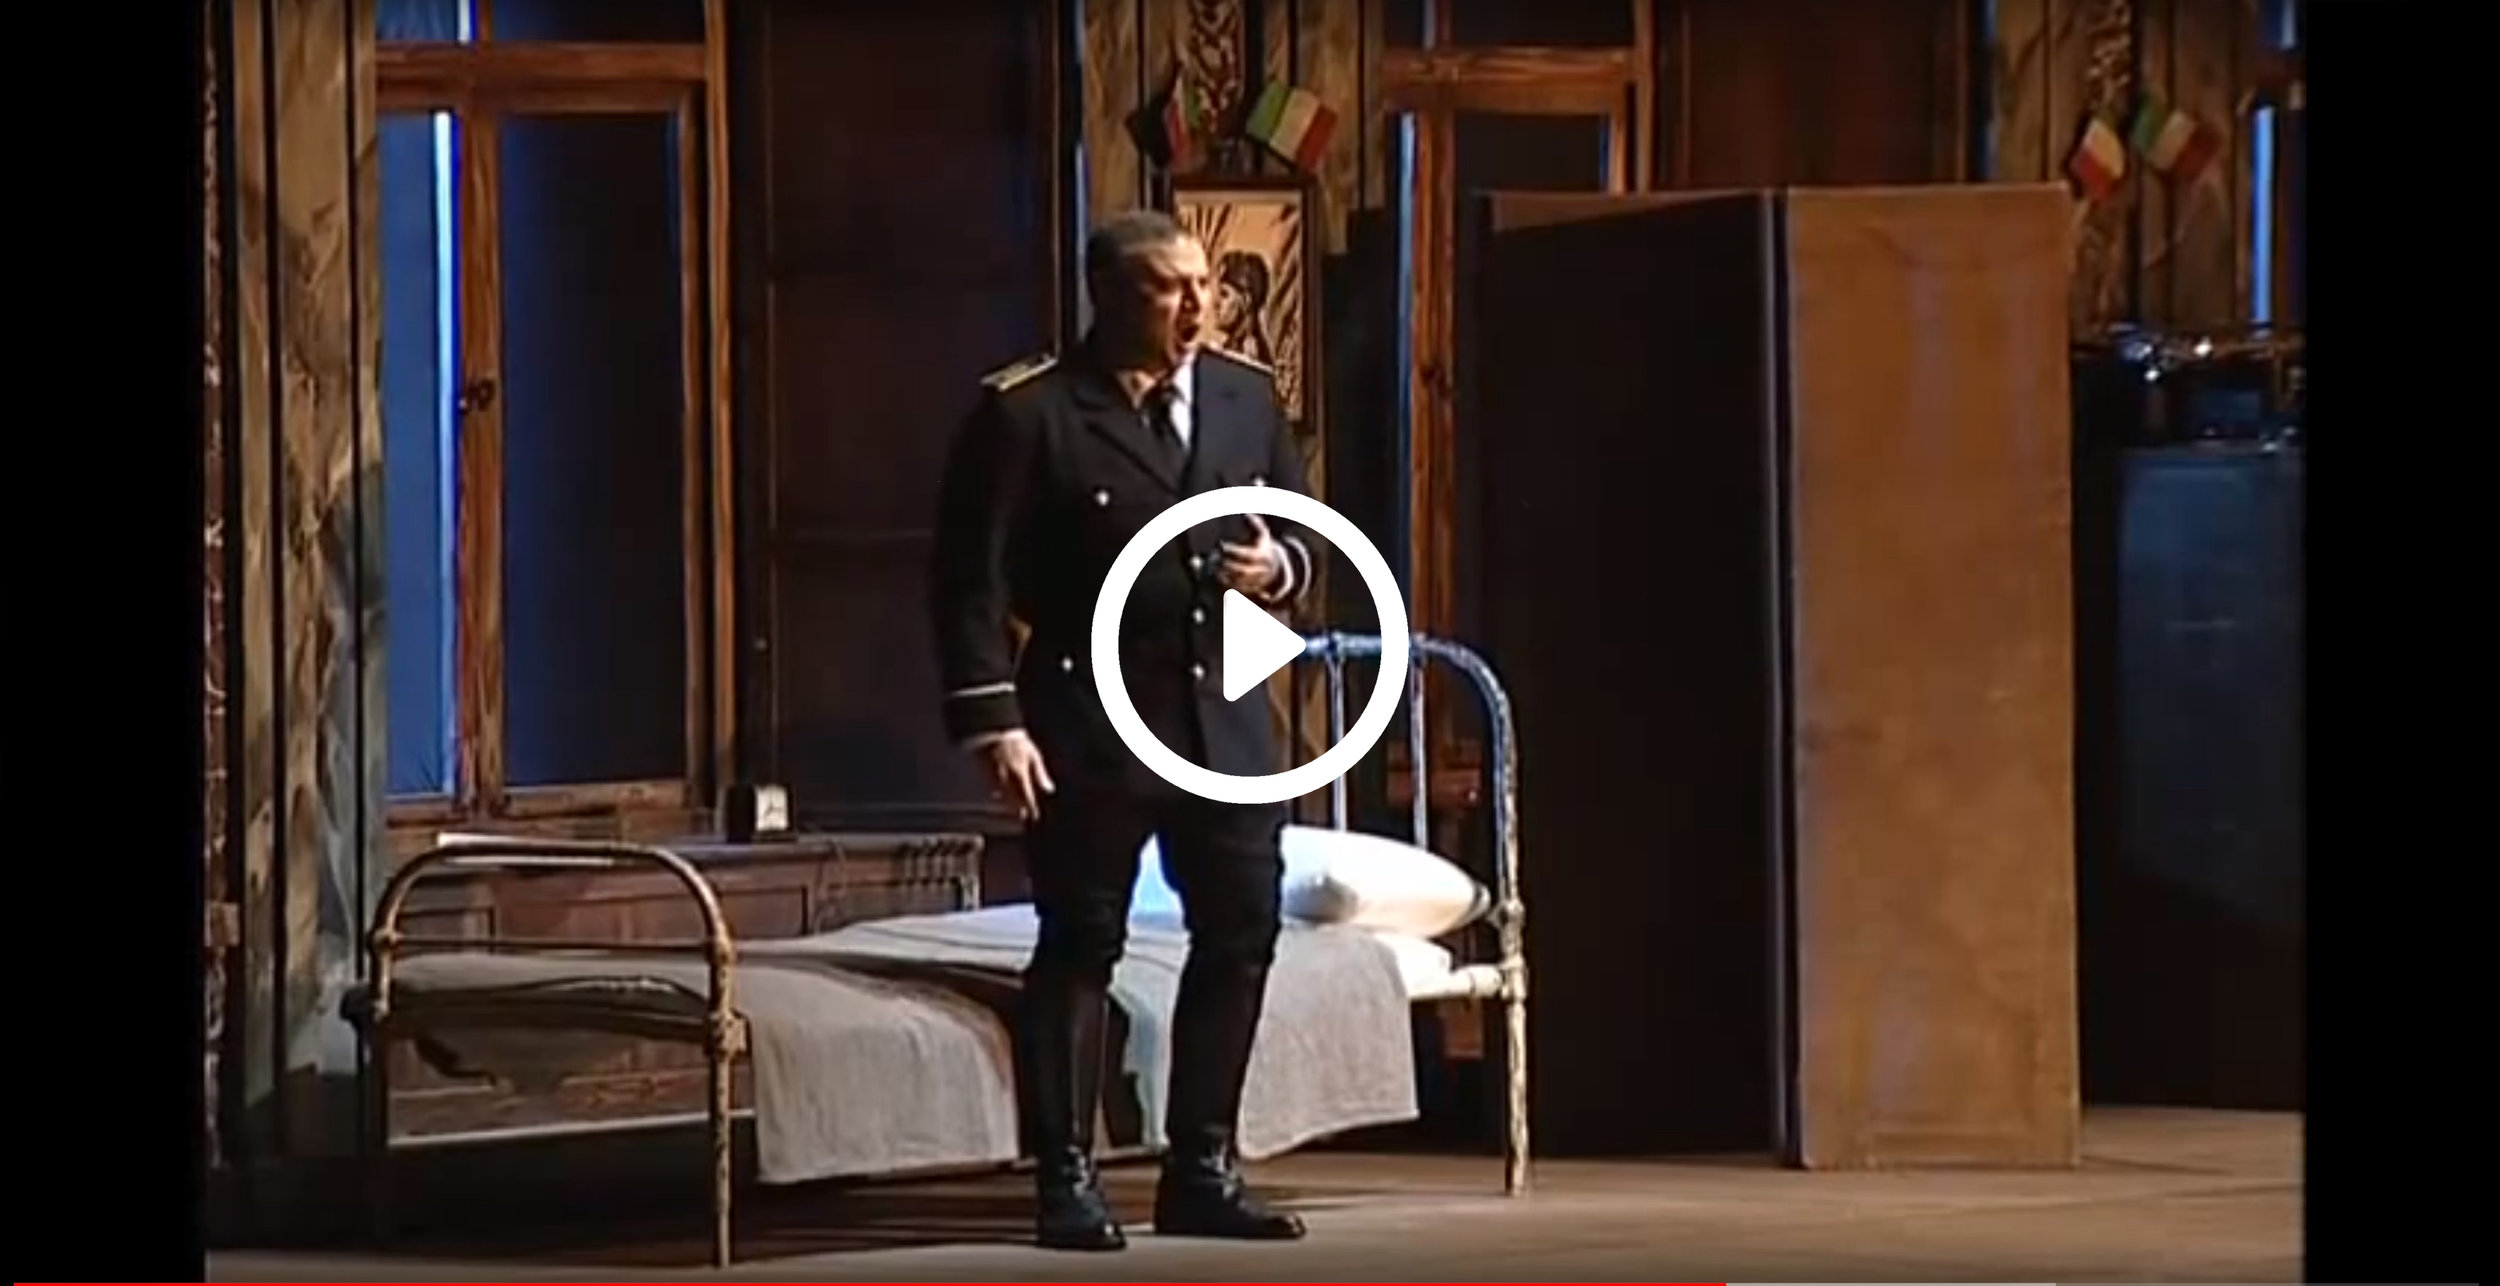 Michael Chioldi In Tosca - Get a first look at Baritone Michael Chioldi in this clip from Opera Oviedo in Spain